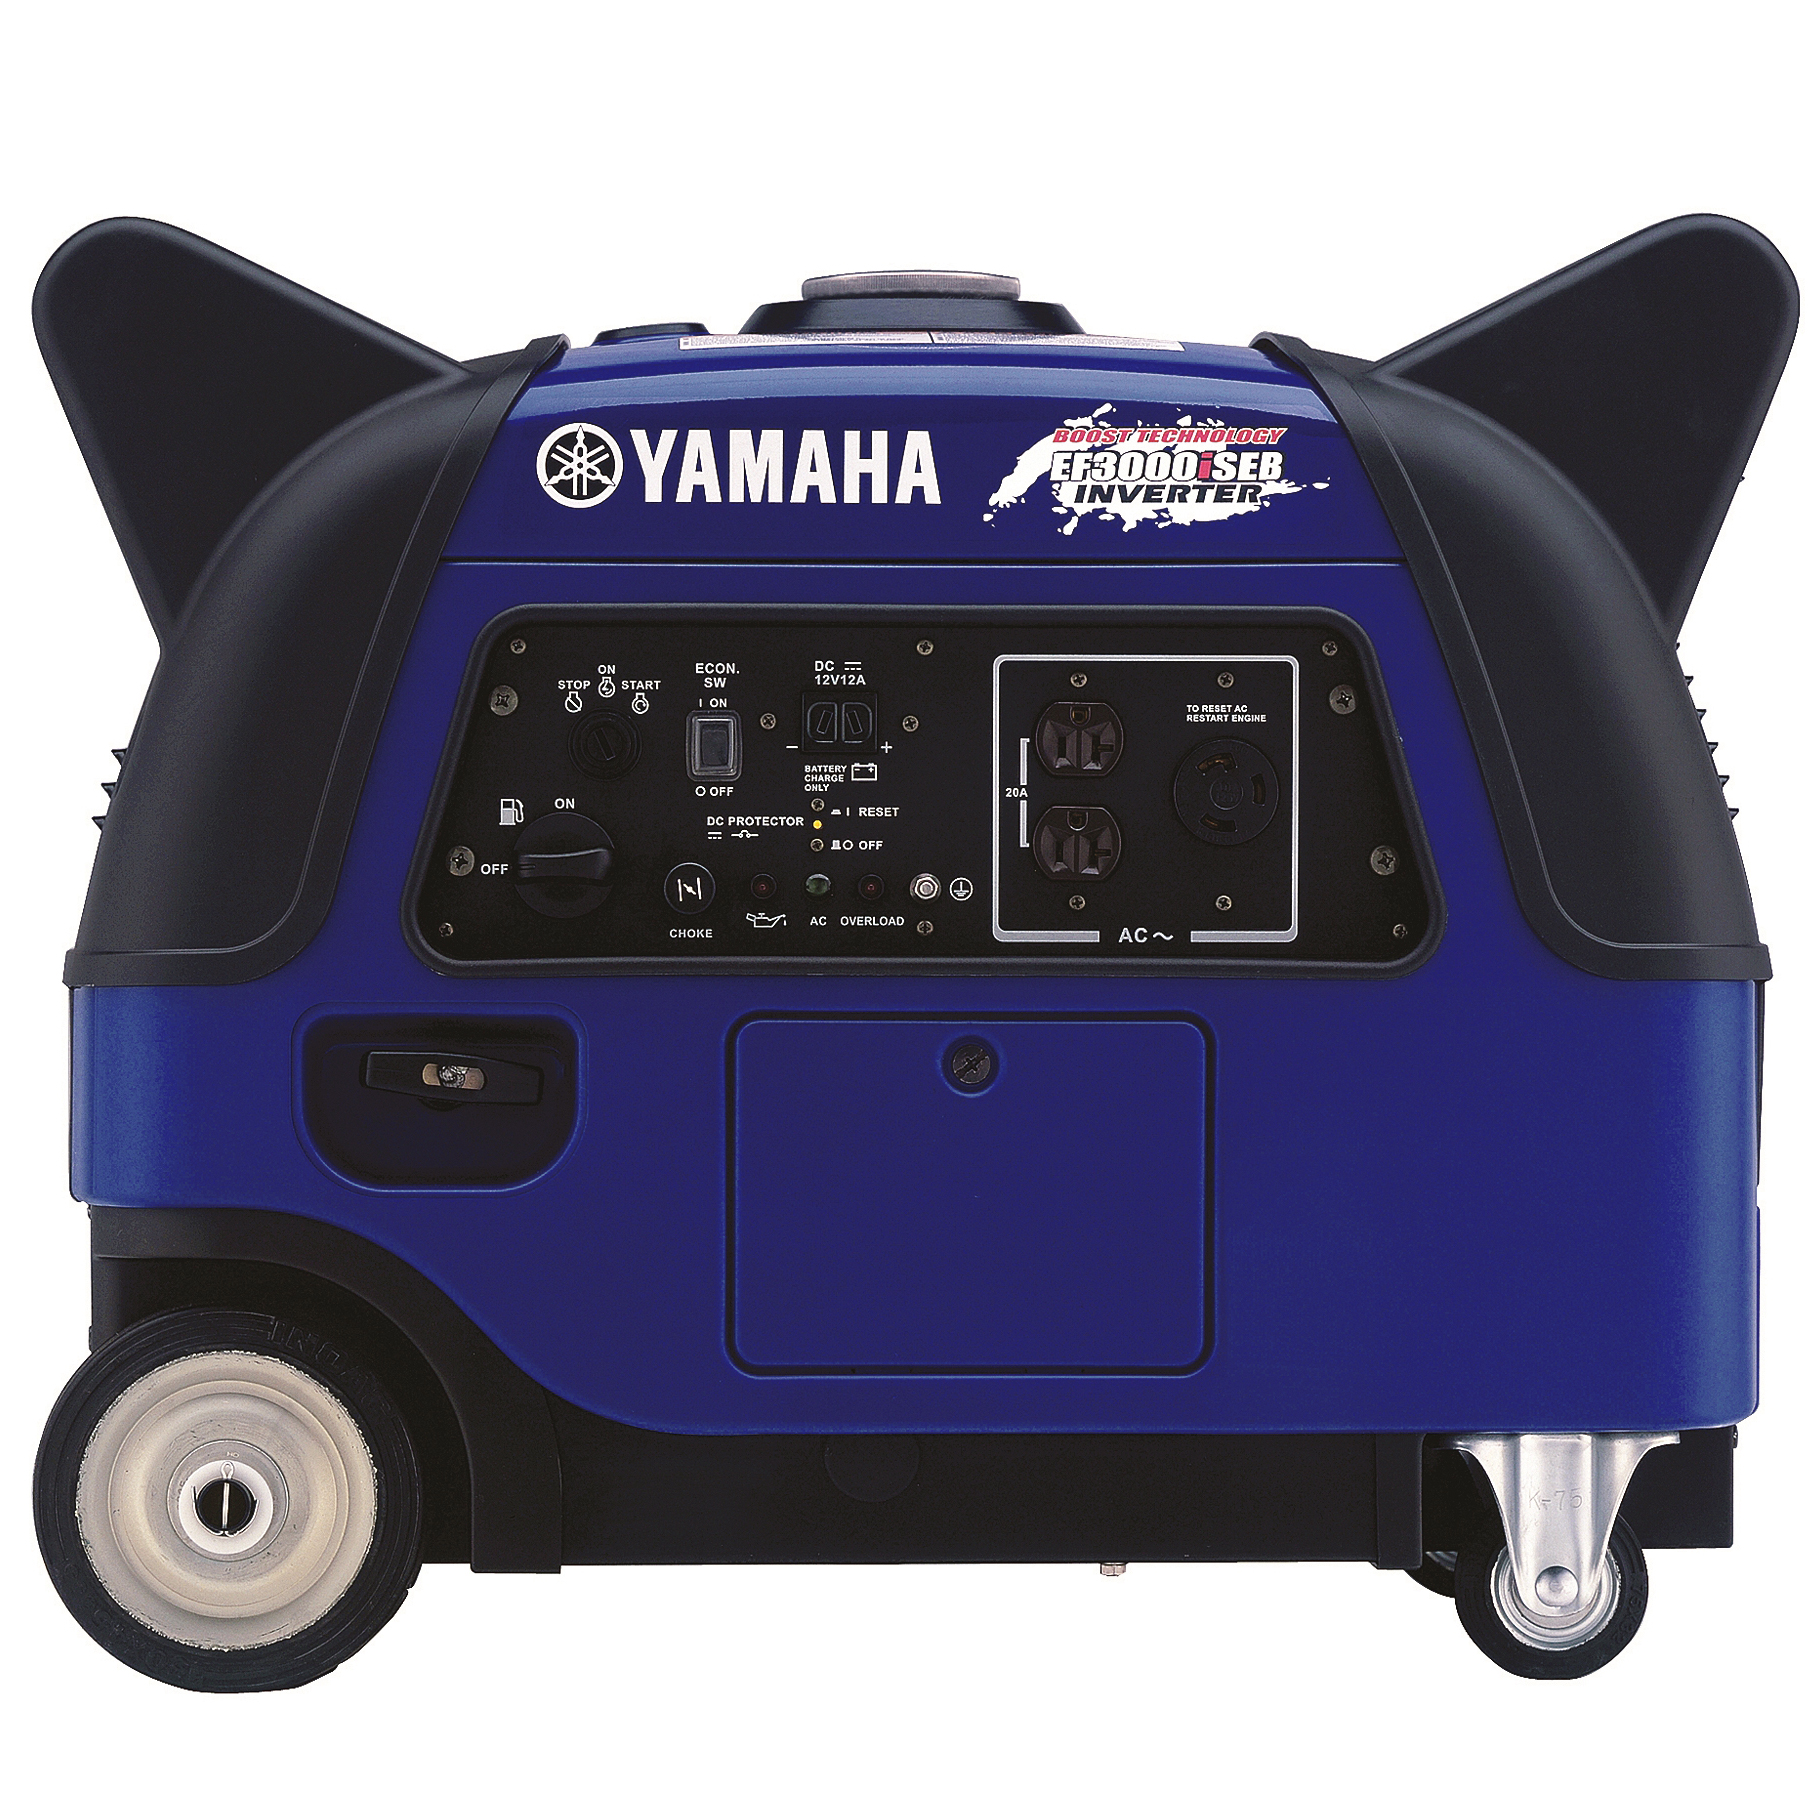 Portable Propane Fuel Inverter Generator Portable Oxygen For You Portable Oxygen Concentrators Approved For Air Travel Portable Closet White: Yamaha EF3000iSEB 3,000 Watt Gas Powered Portable Inverter